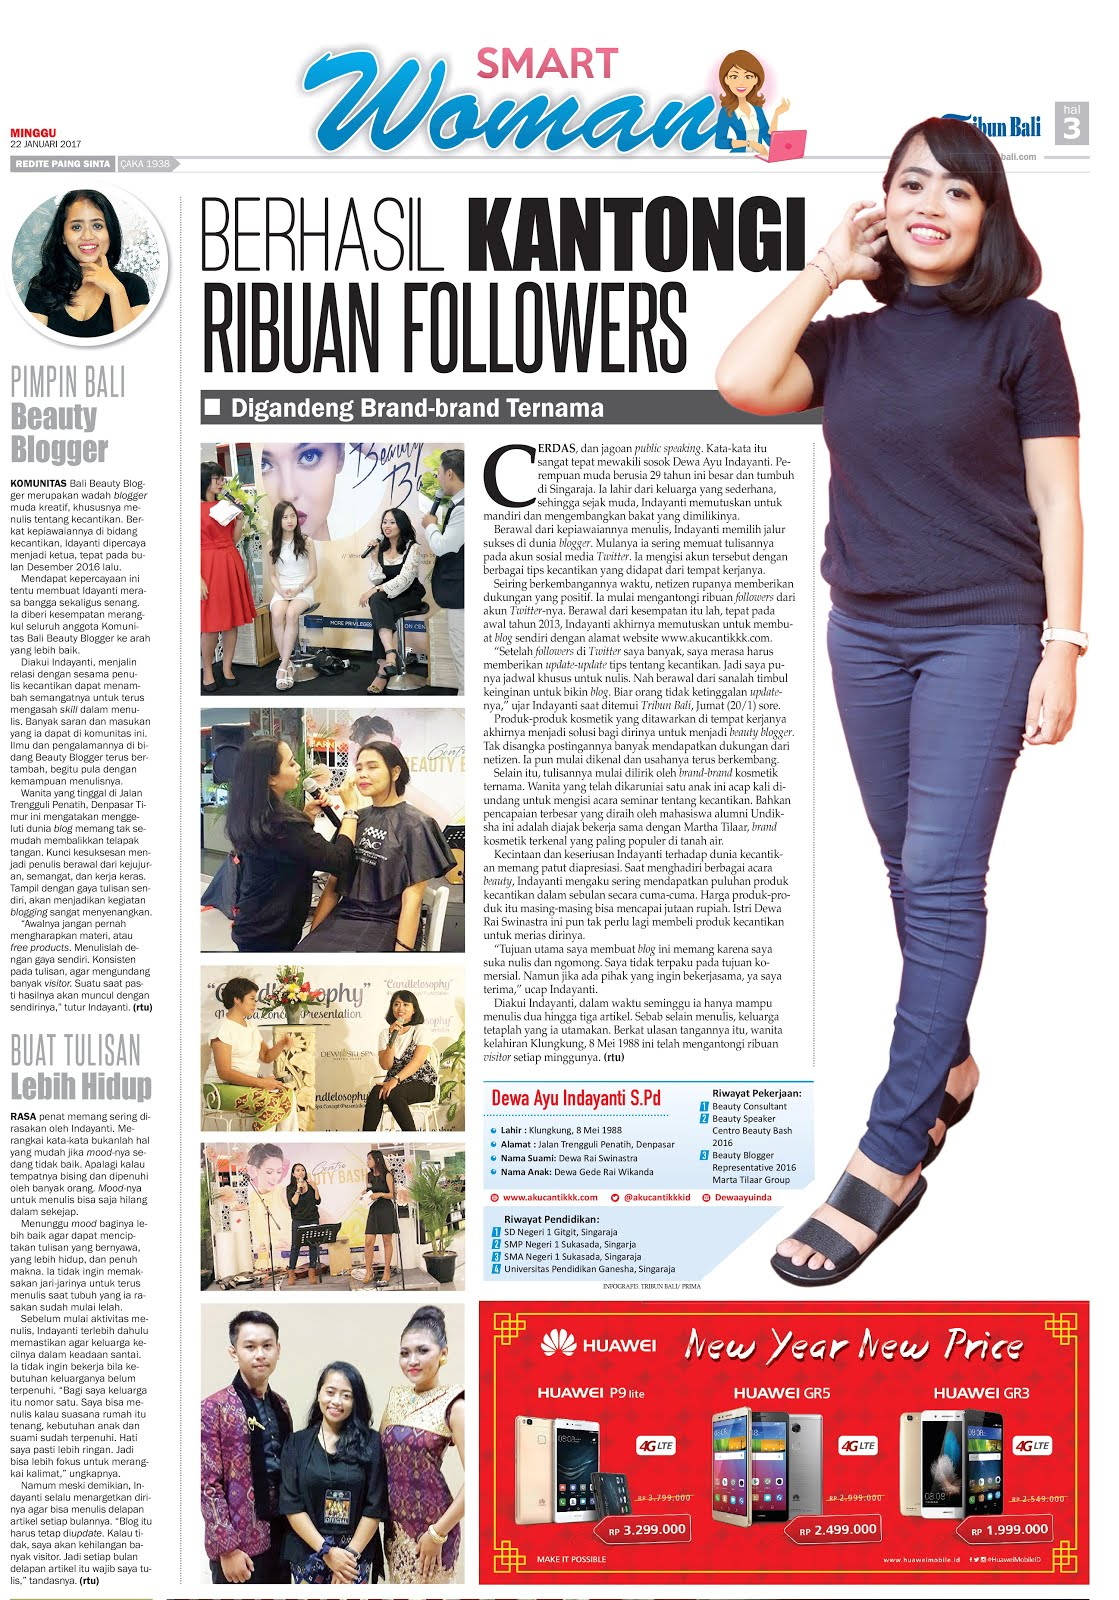 FEATURED IN TRIBUN BALI